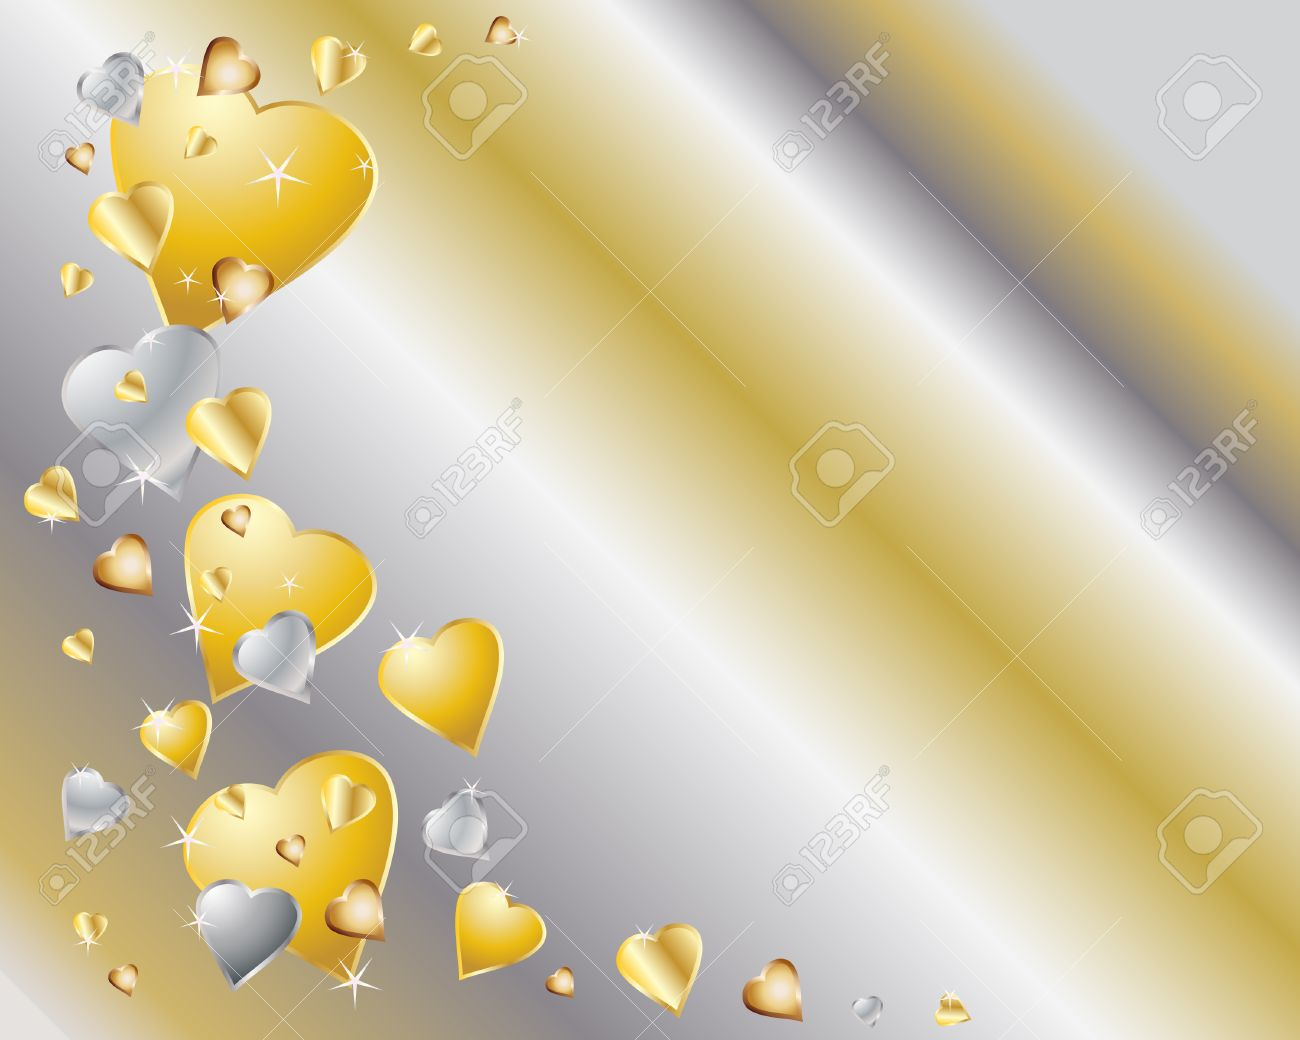 an illustration of gold and silver hearts with sparkles on a metallic background Stock Vector - 8077615